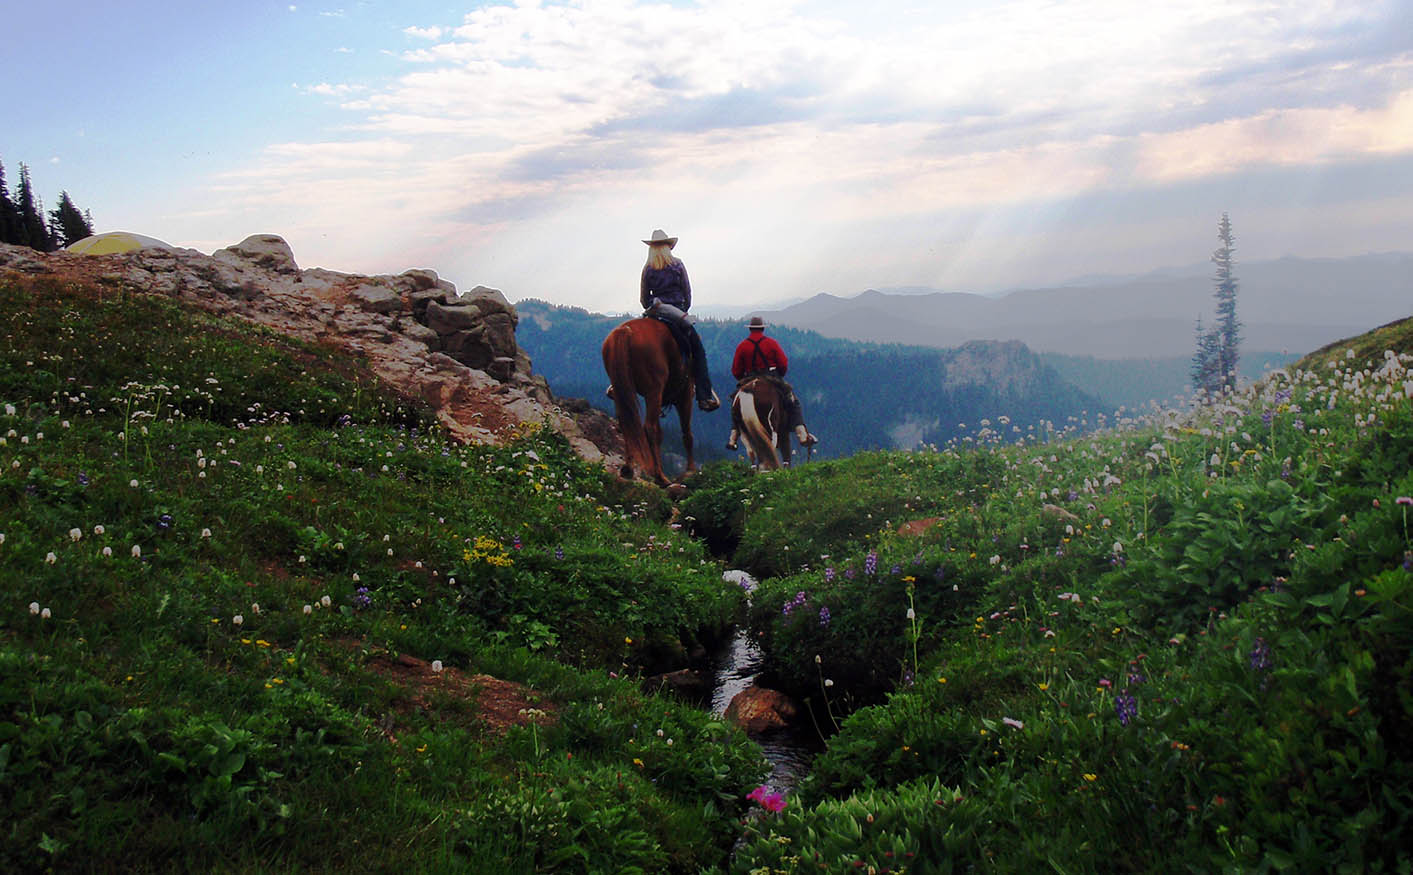 Riders in Goat Rocks Wilderness